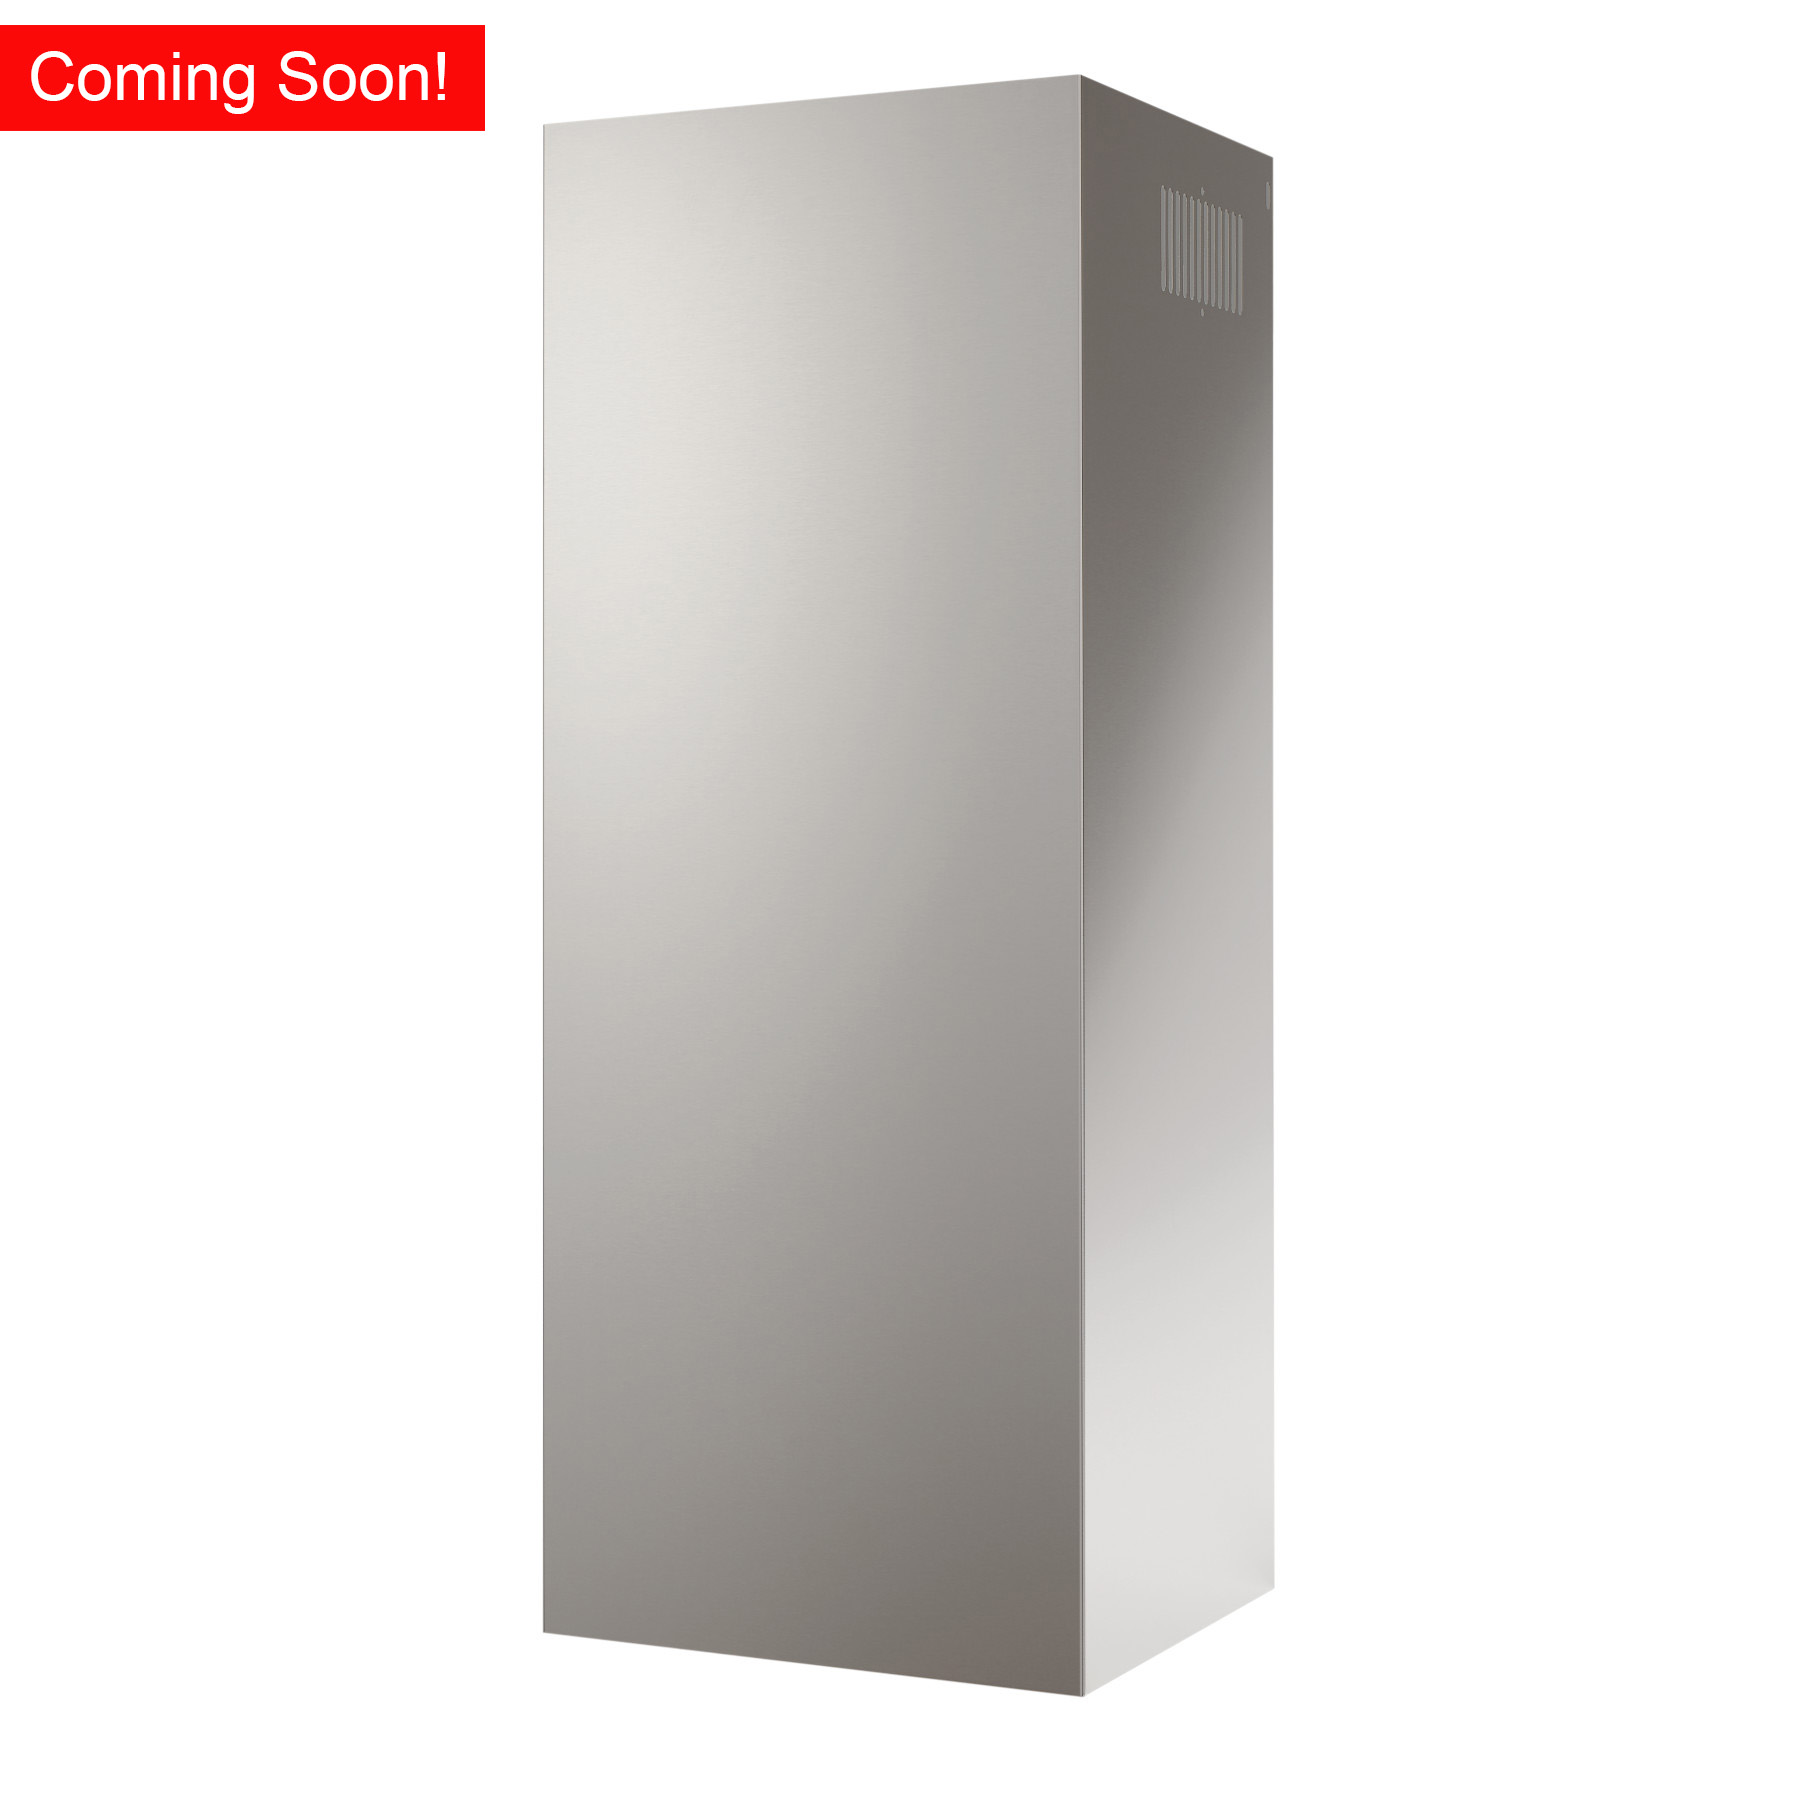 Optional ducted/non-ducted flue extension in black stainless for Broan BWS series range hoods